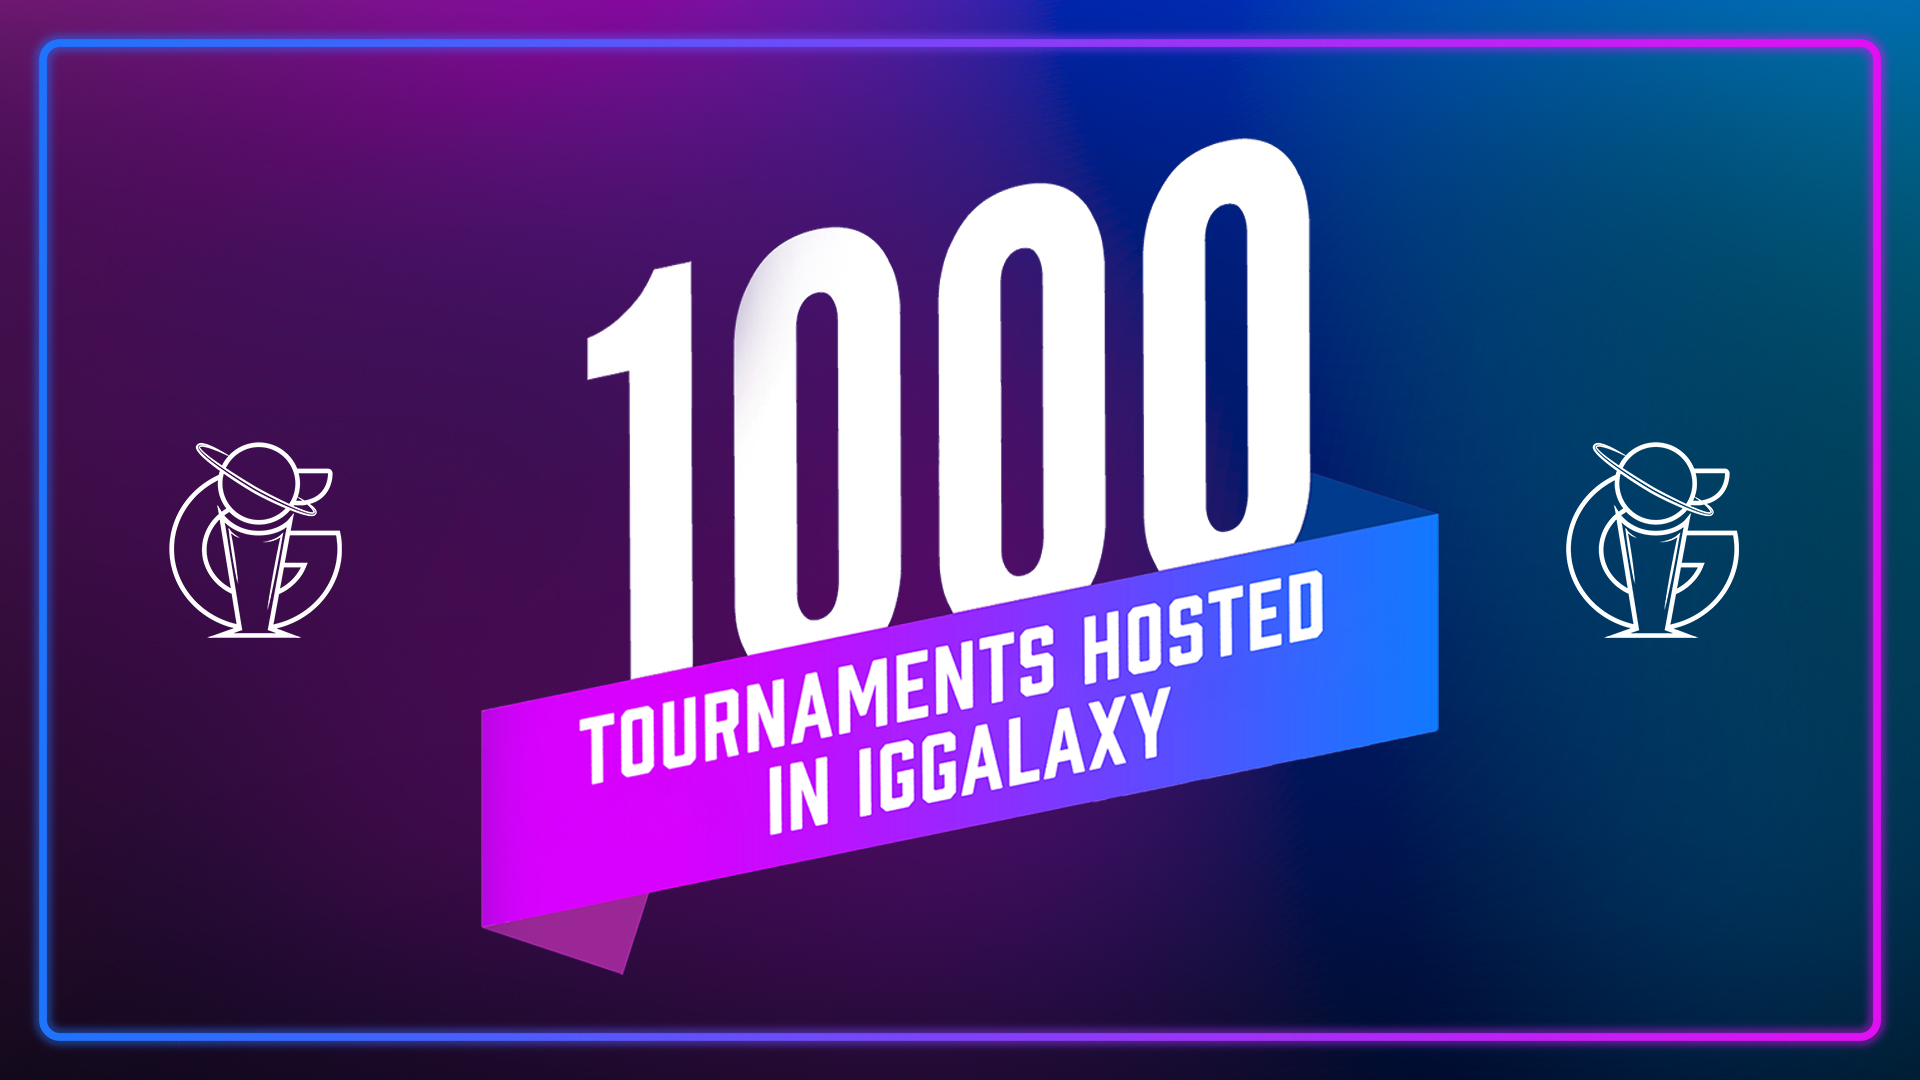 GG: We've hosted over 1,000 tournaments in IGGalaxy!